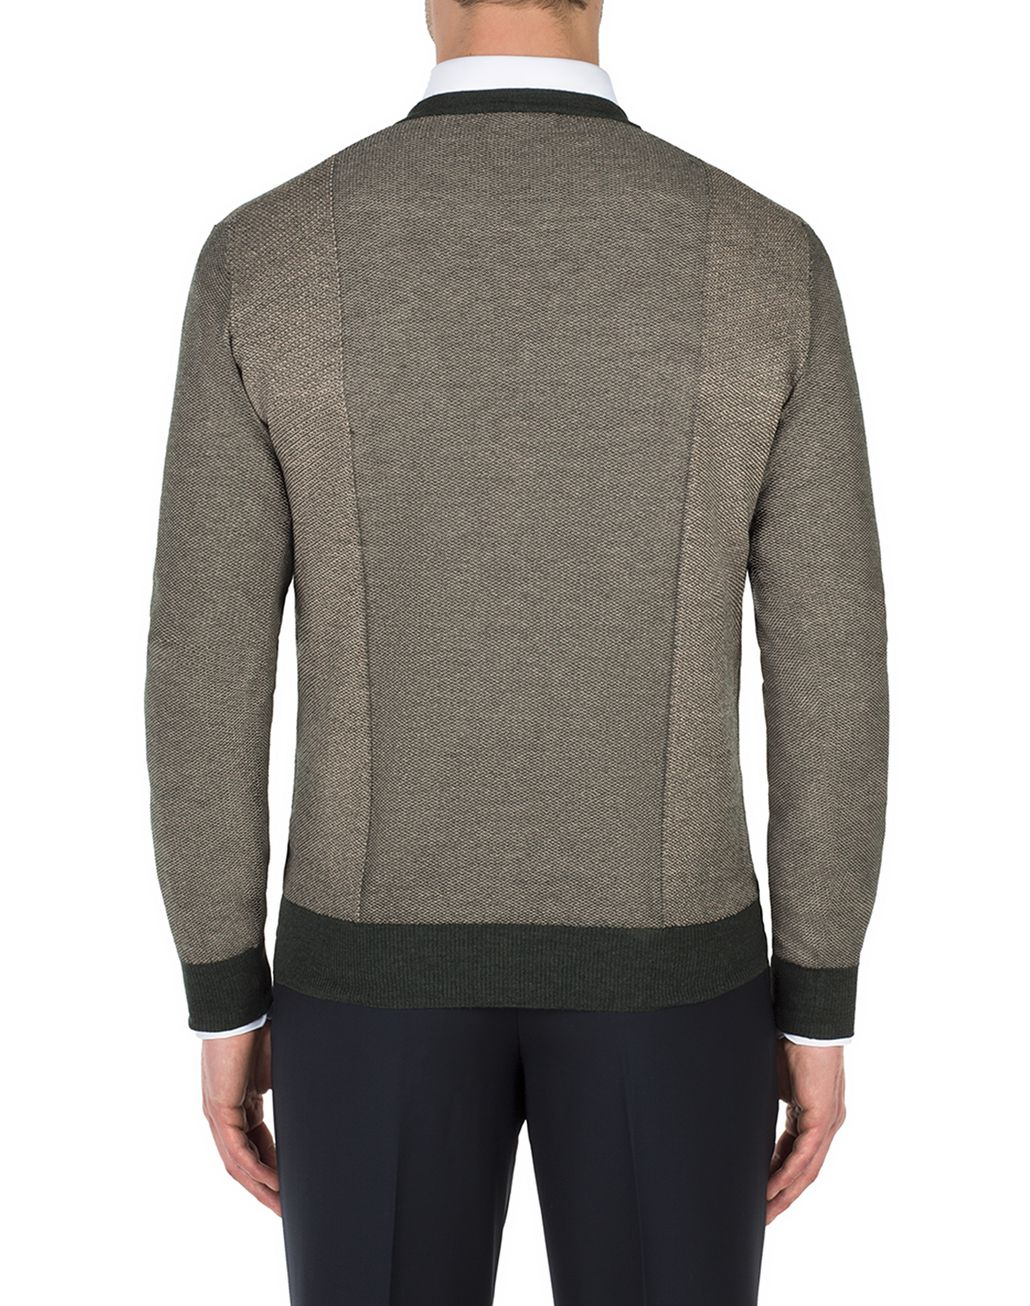 BRIONI Thyme Green and Sand V-neck Micro Jacquard Sweater   Knitwear Man d